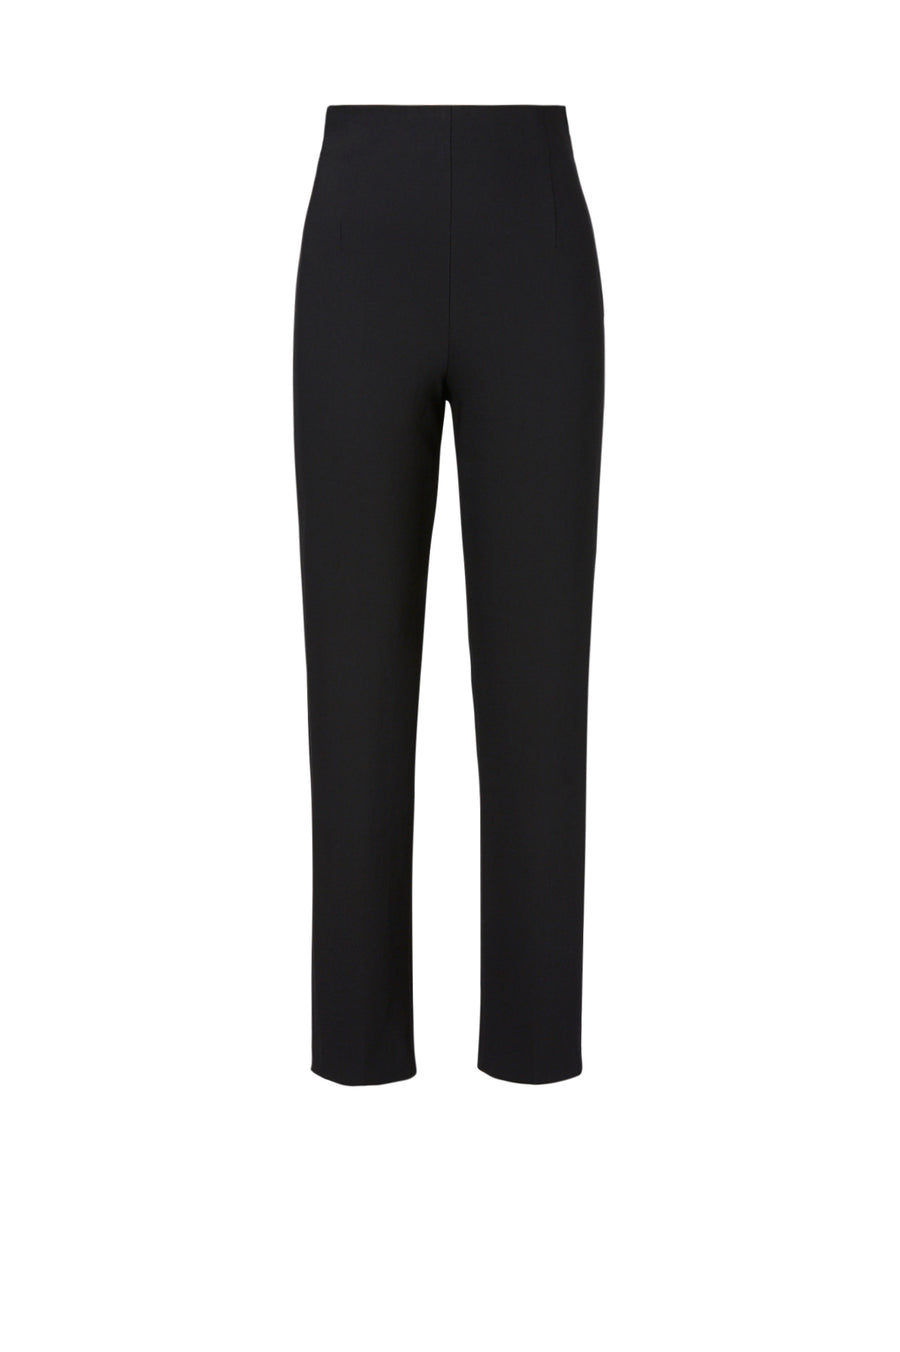 With a high rise and flattering slim leg, the trouser fastens with a side zip closure for ease of wear.